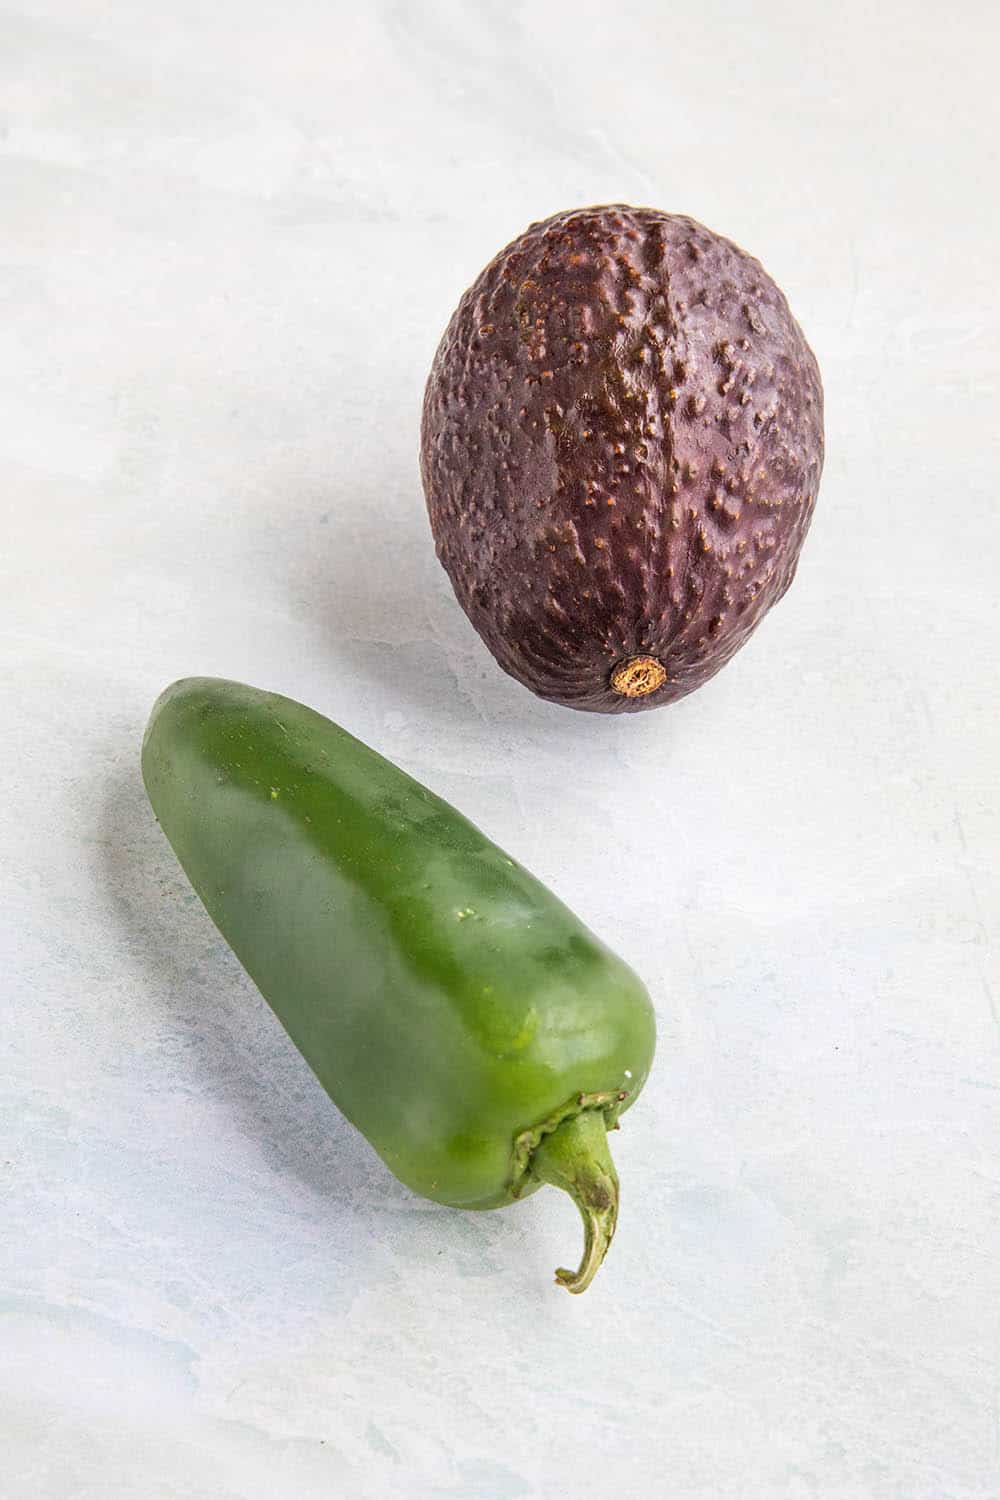 An avocado and a jalapeno pepper, best friends